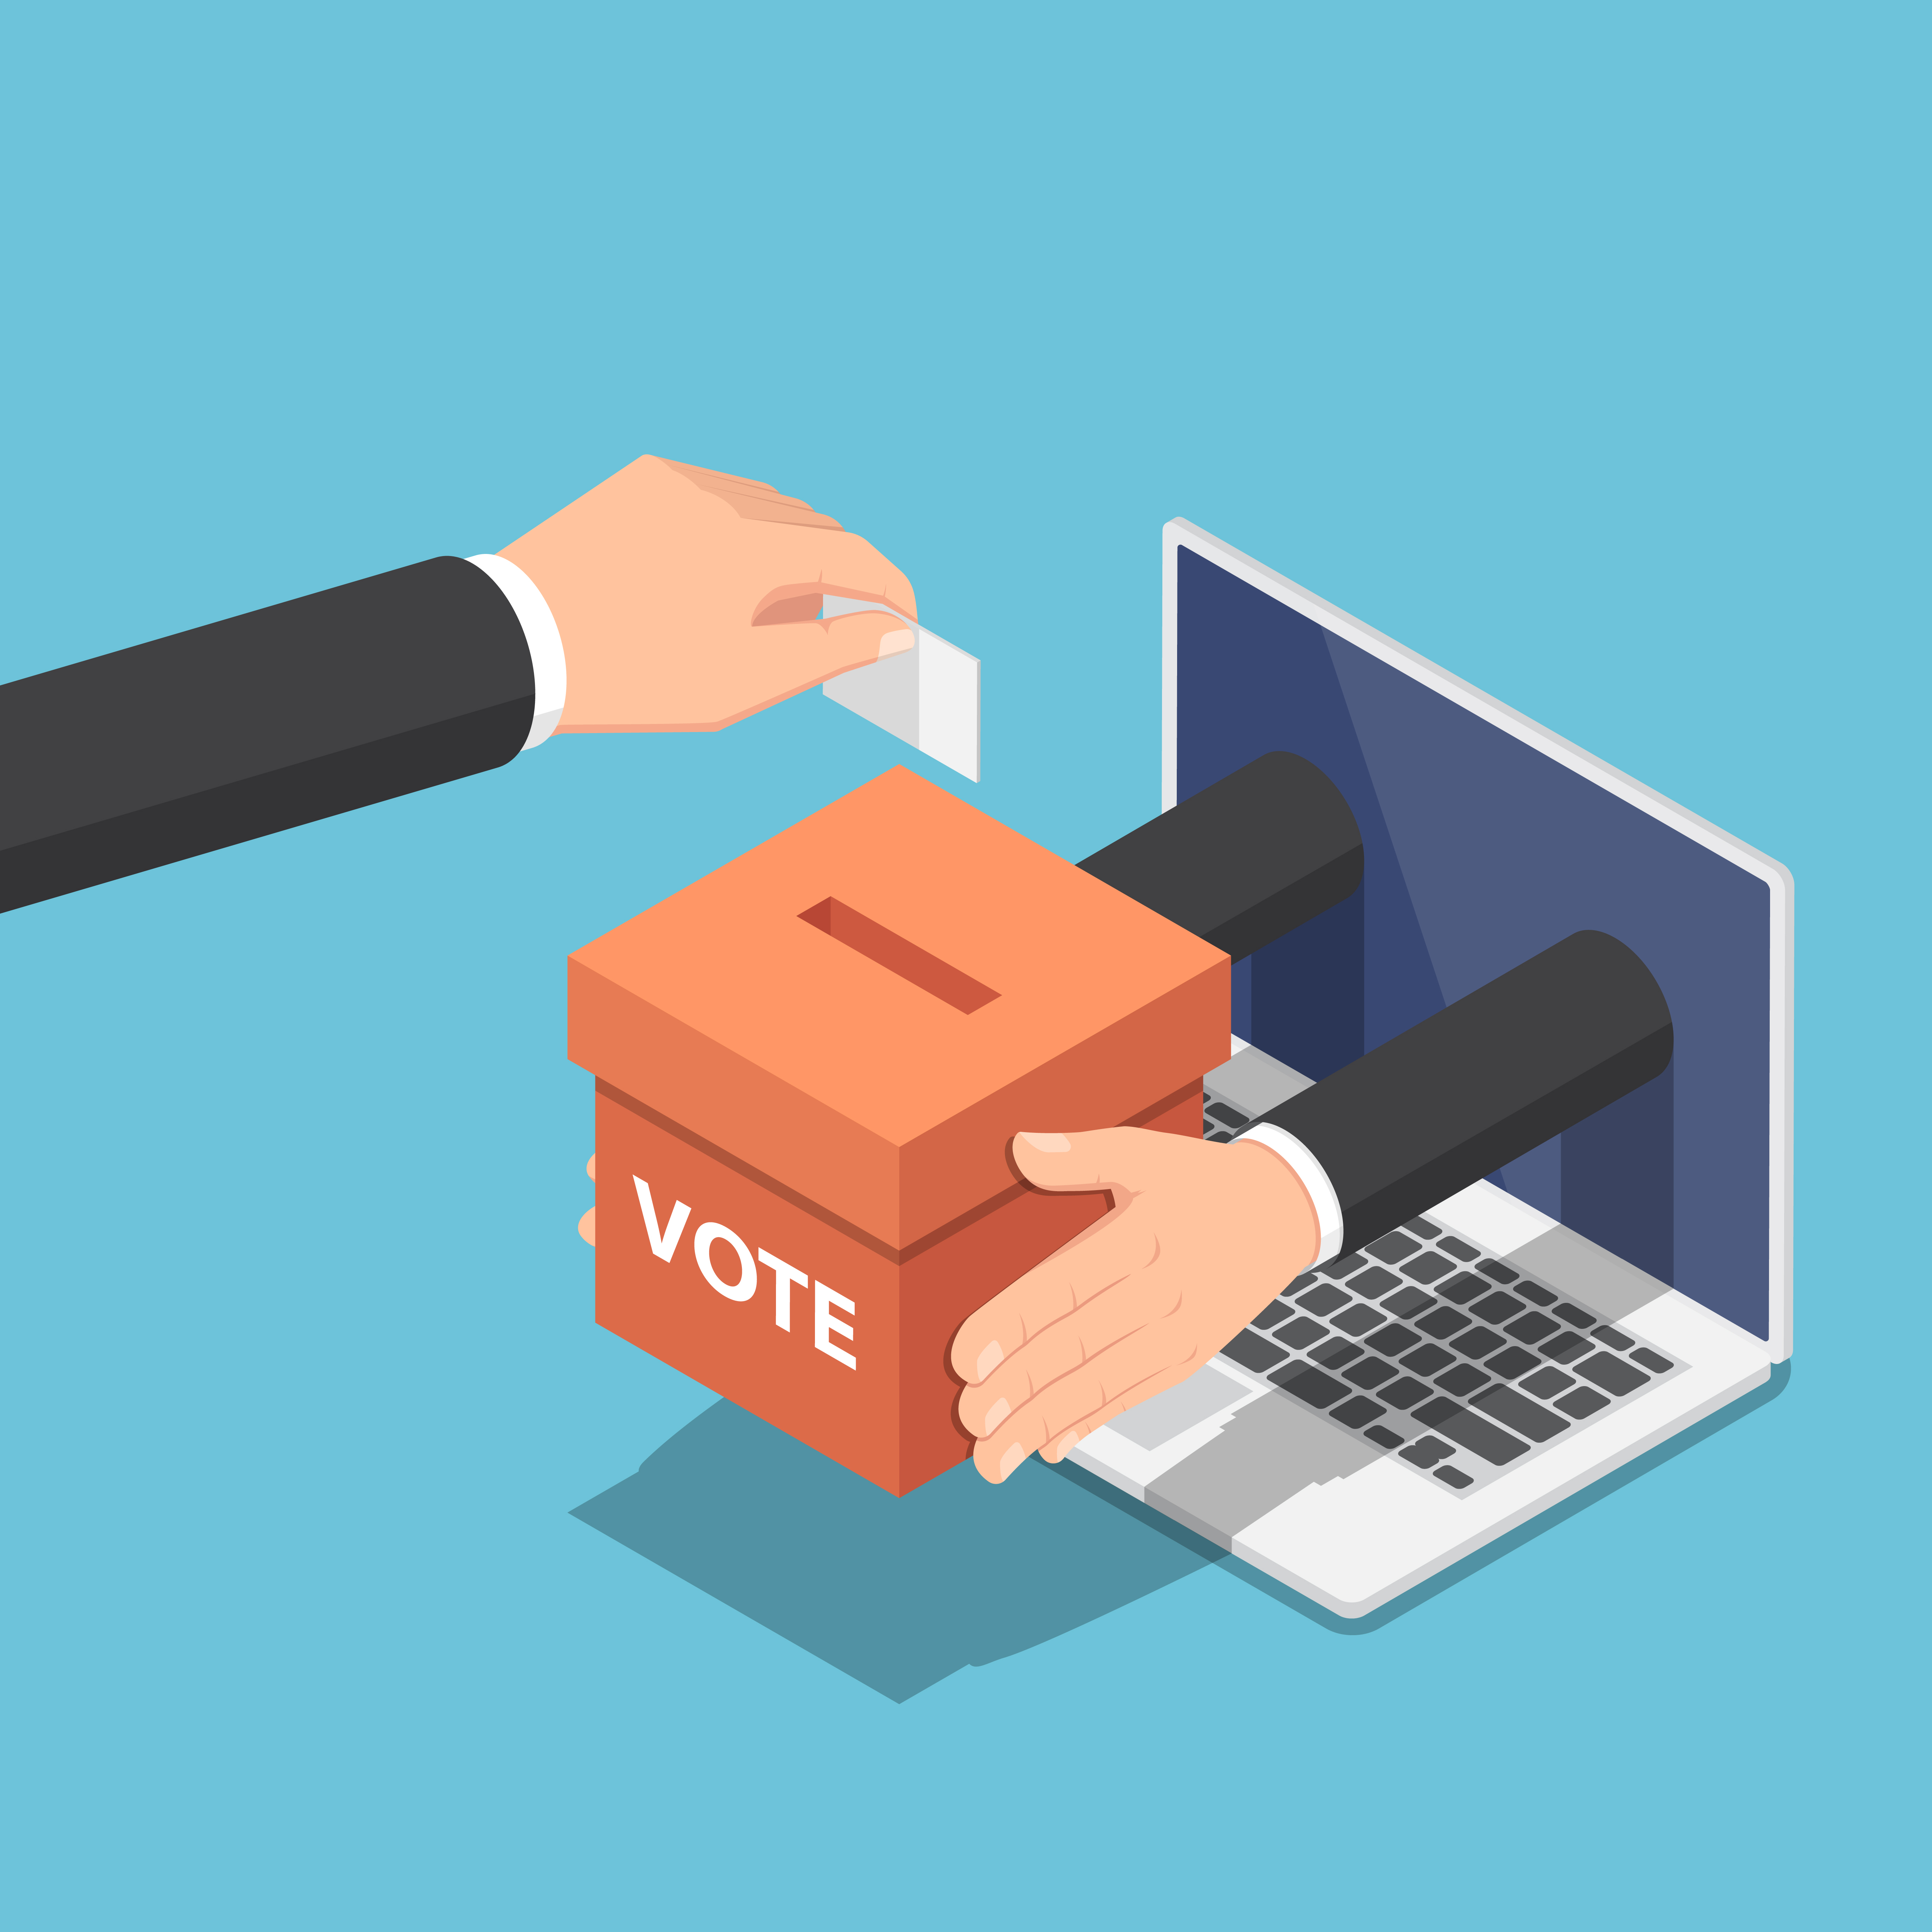 With voter ID plans criticised, what election technology alternatives are there?